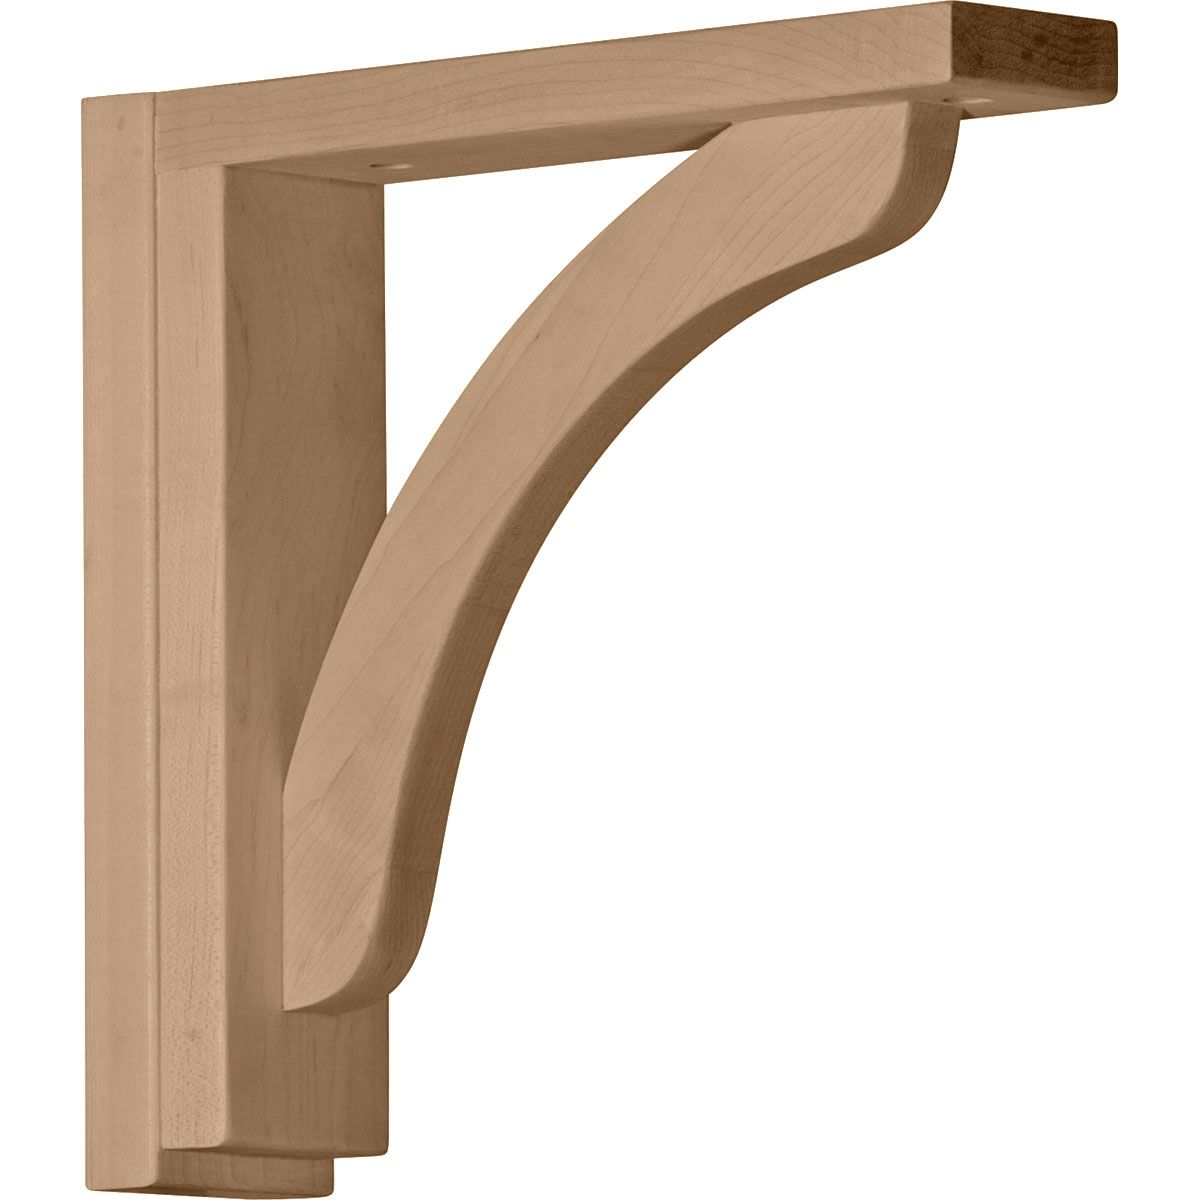 Reece Wood Bracket | Wood brackets, Shelf brackets and Granite ...